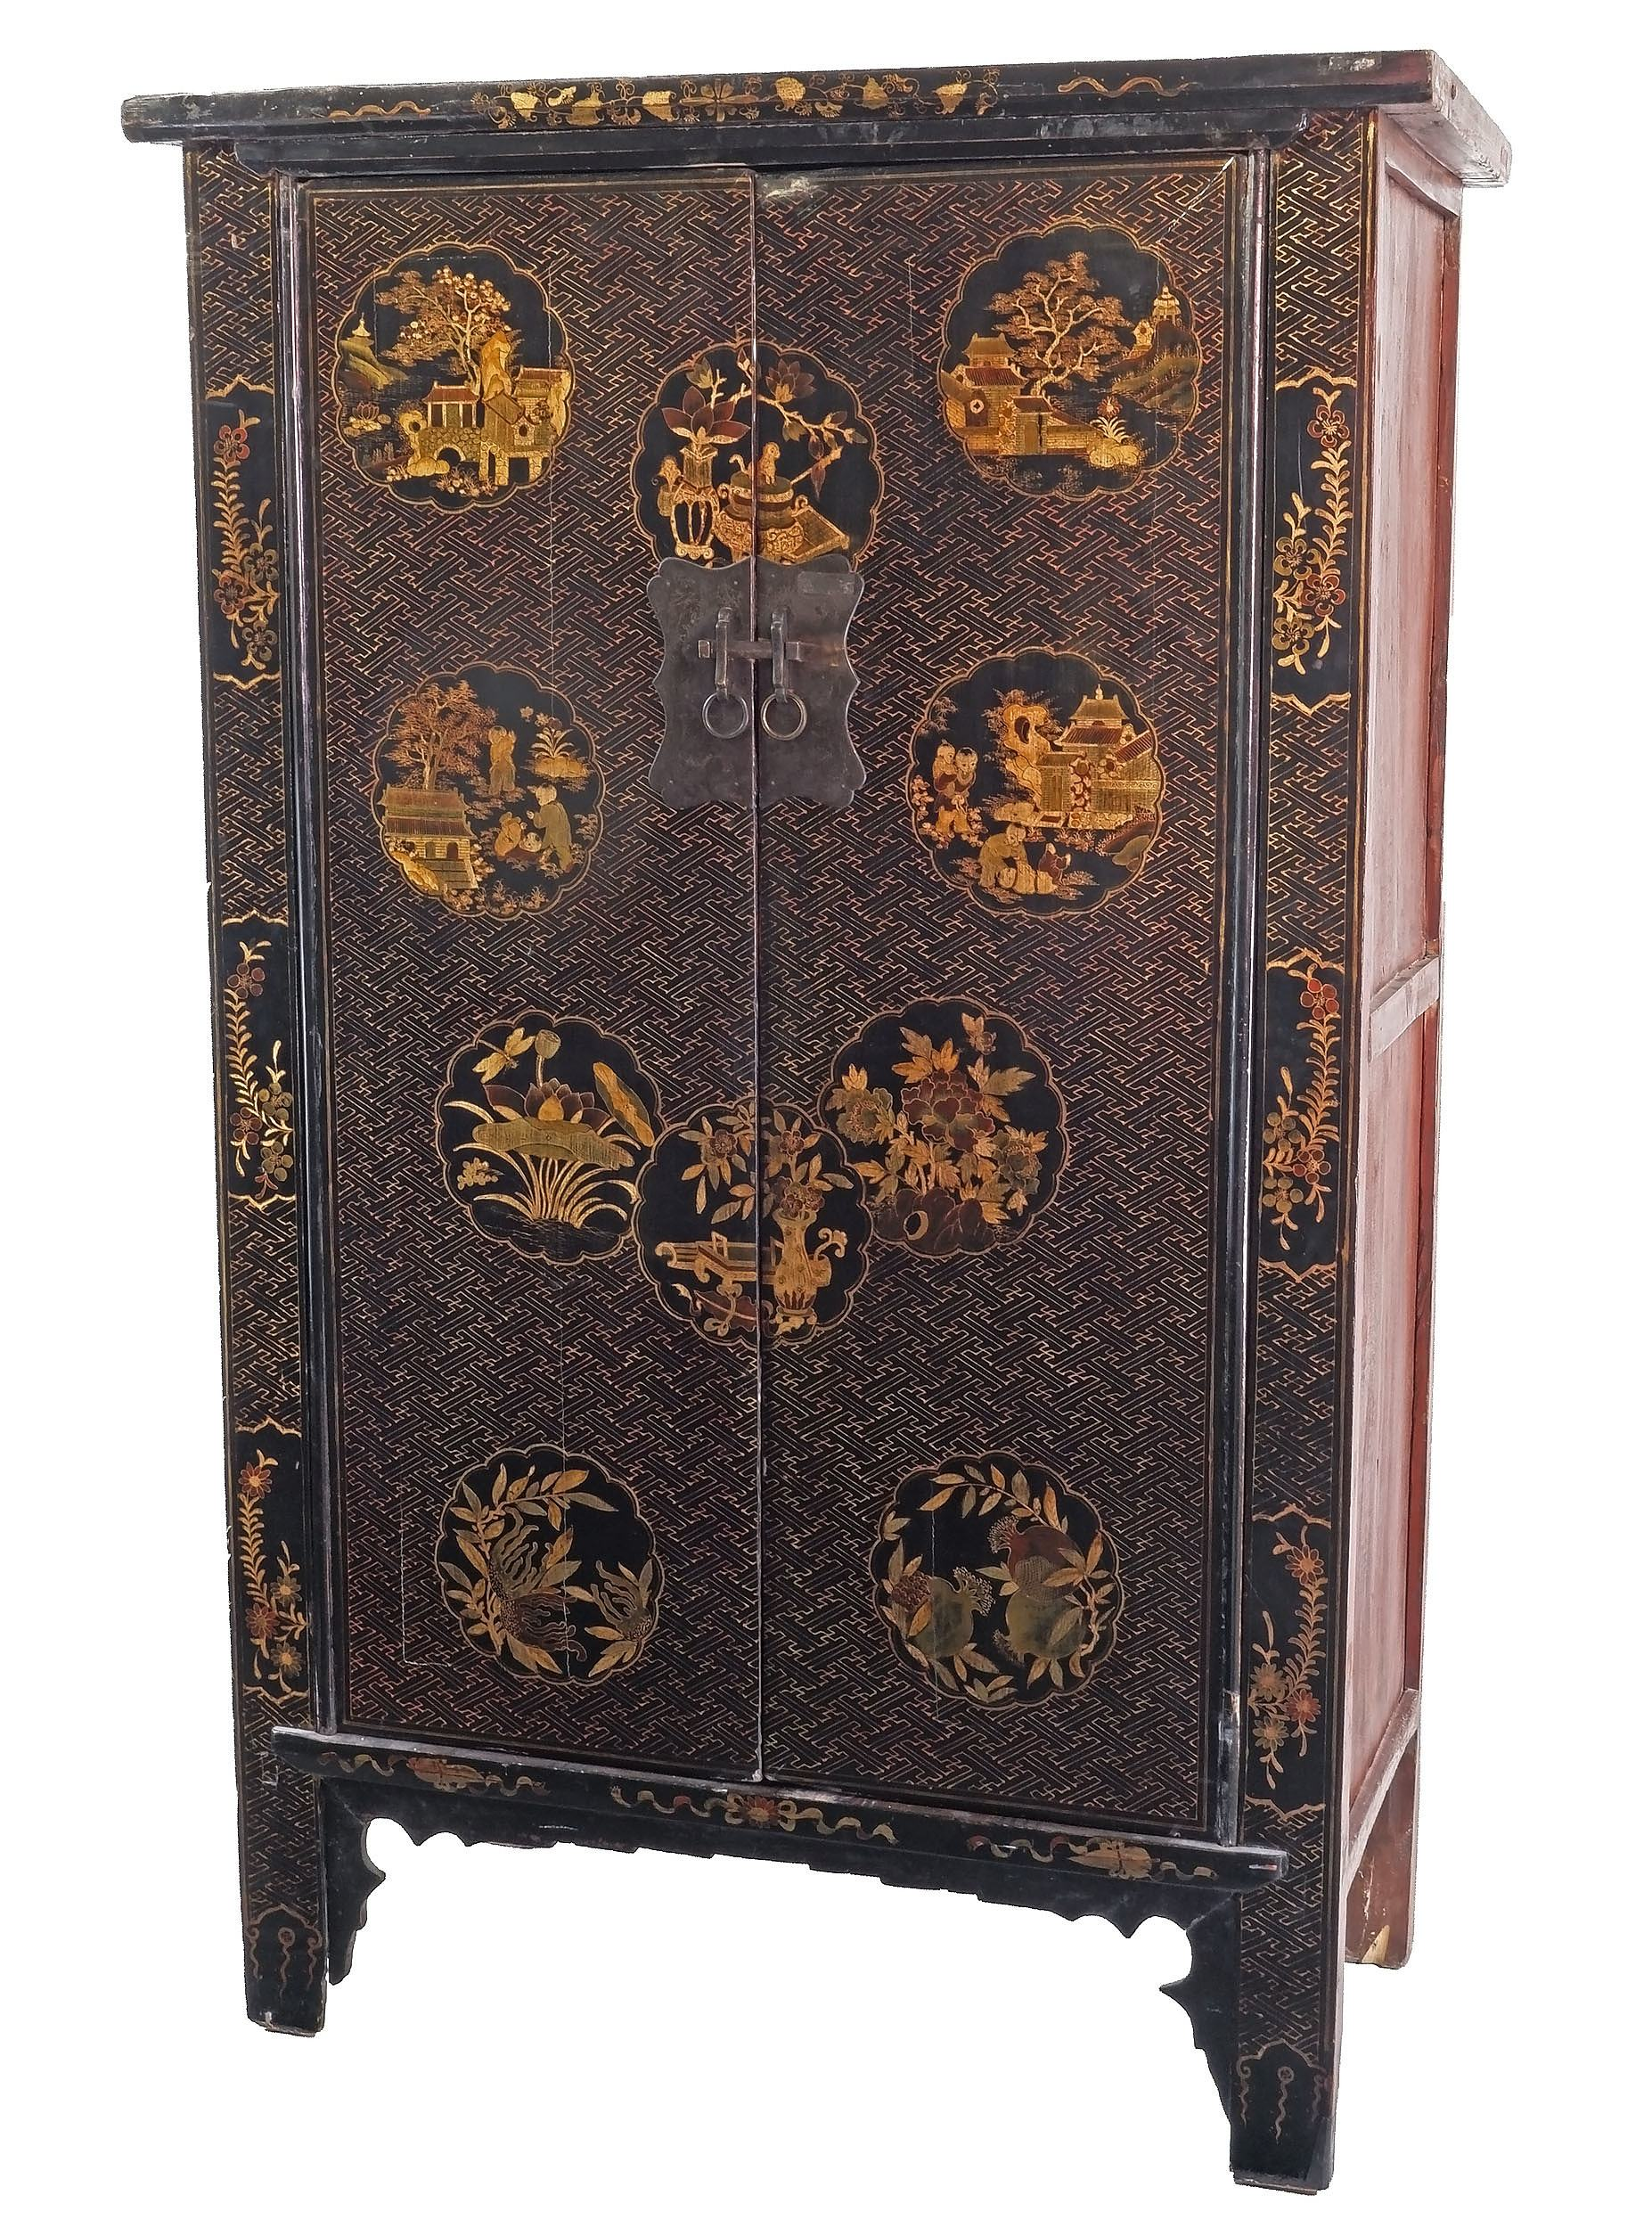 'Large Chinese Export Black and Polychrome Lacquered Cabinet, 20th Century'